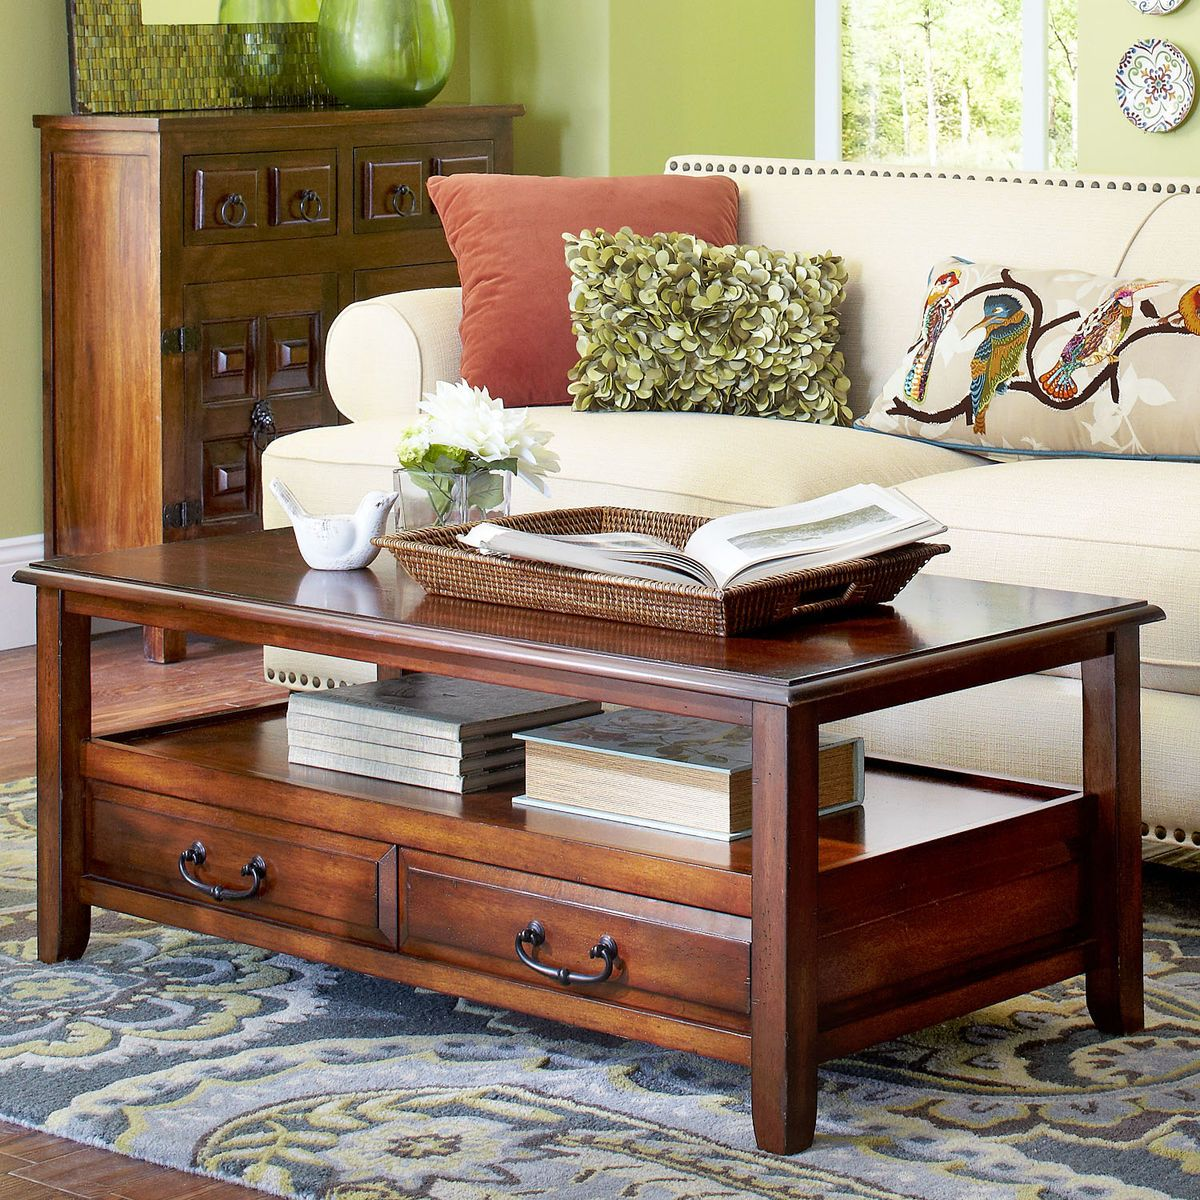 Anywhere Tuscan Brown Coffee Table With Pull Handles Brown Coffee Table Coffee Table Black Coffee Tables